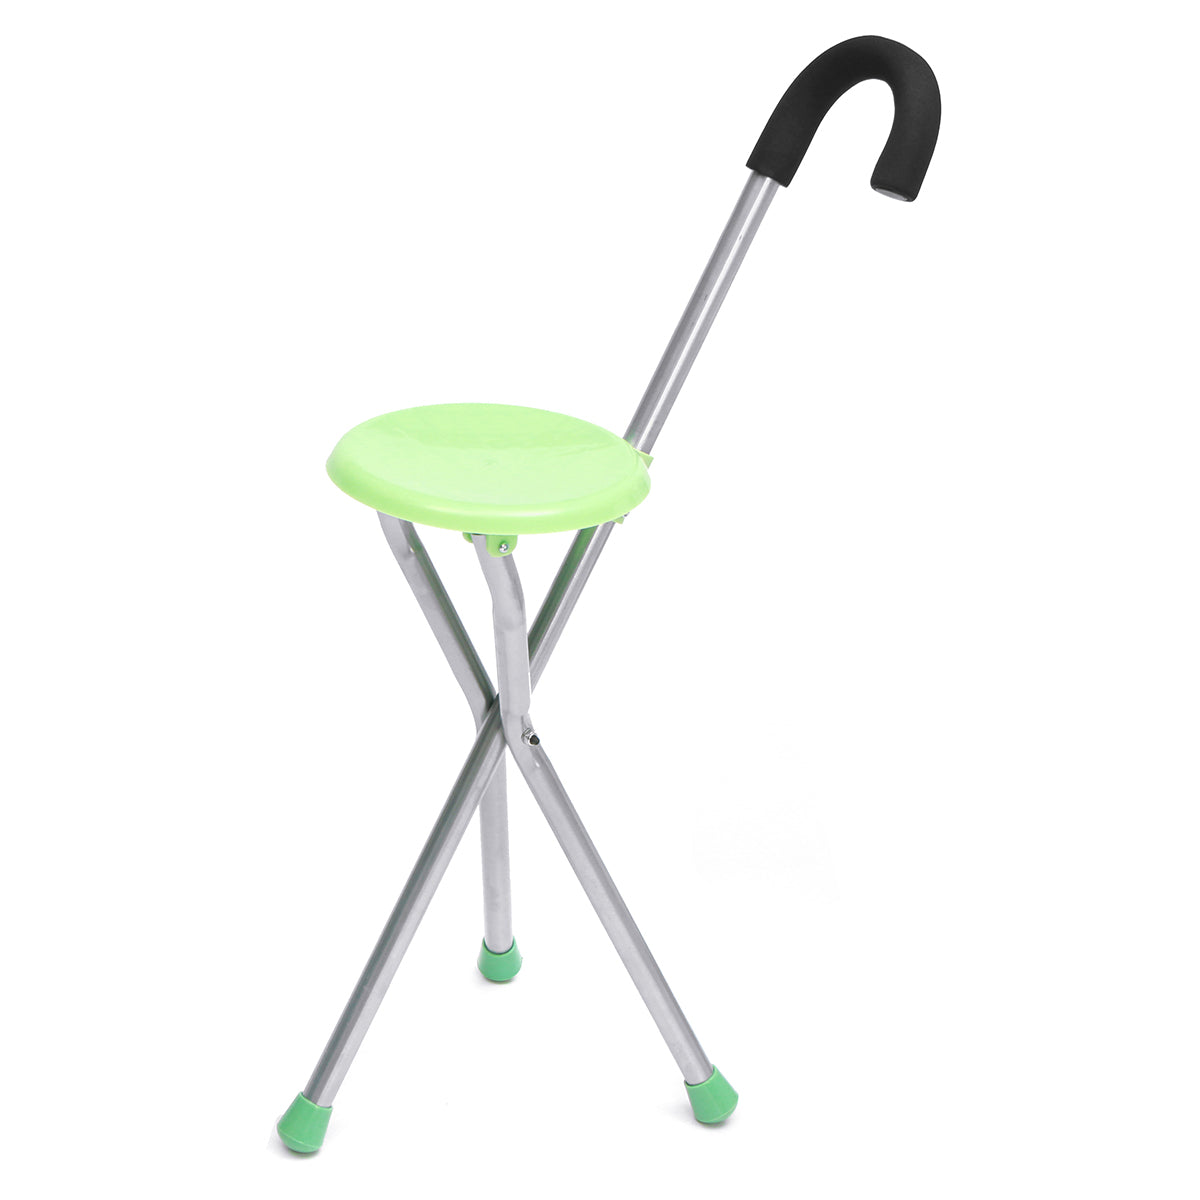 Camping Folding Tripod Cane Walking Stick Seat Portable Stool Chair Max Load Bearing 130kg